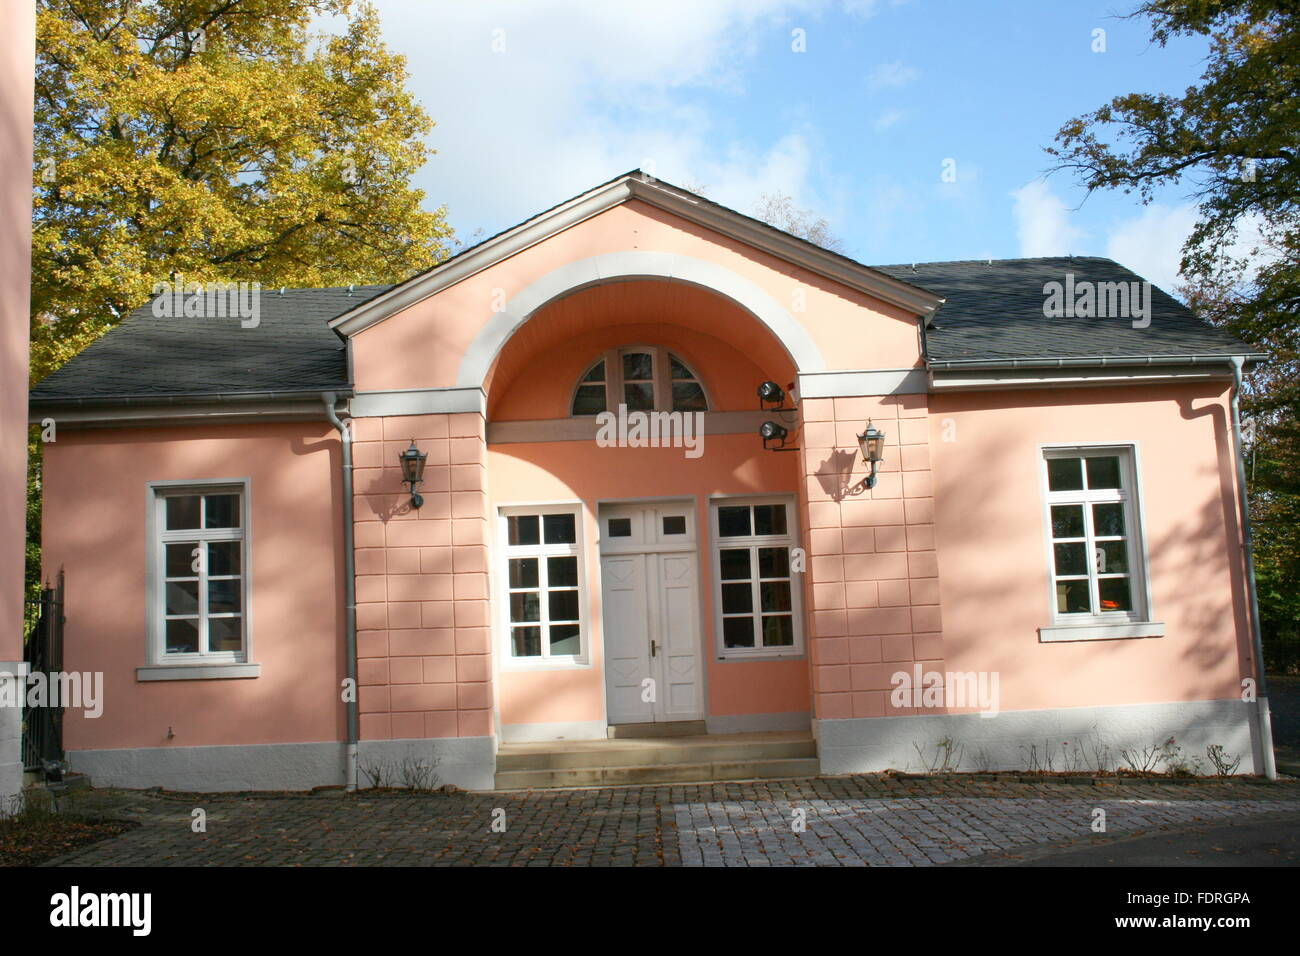 old house,public building - Stock Image